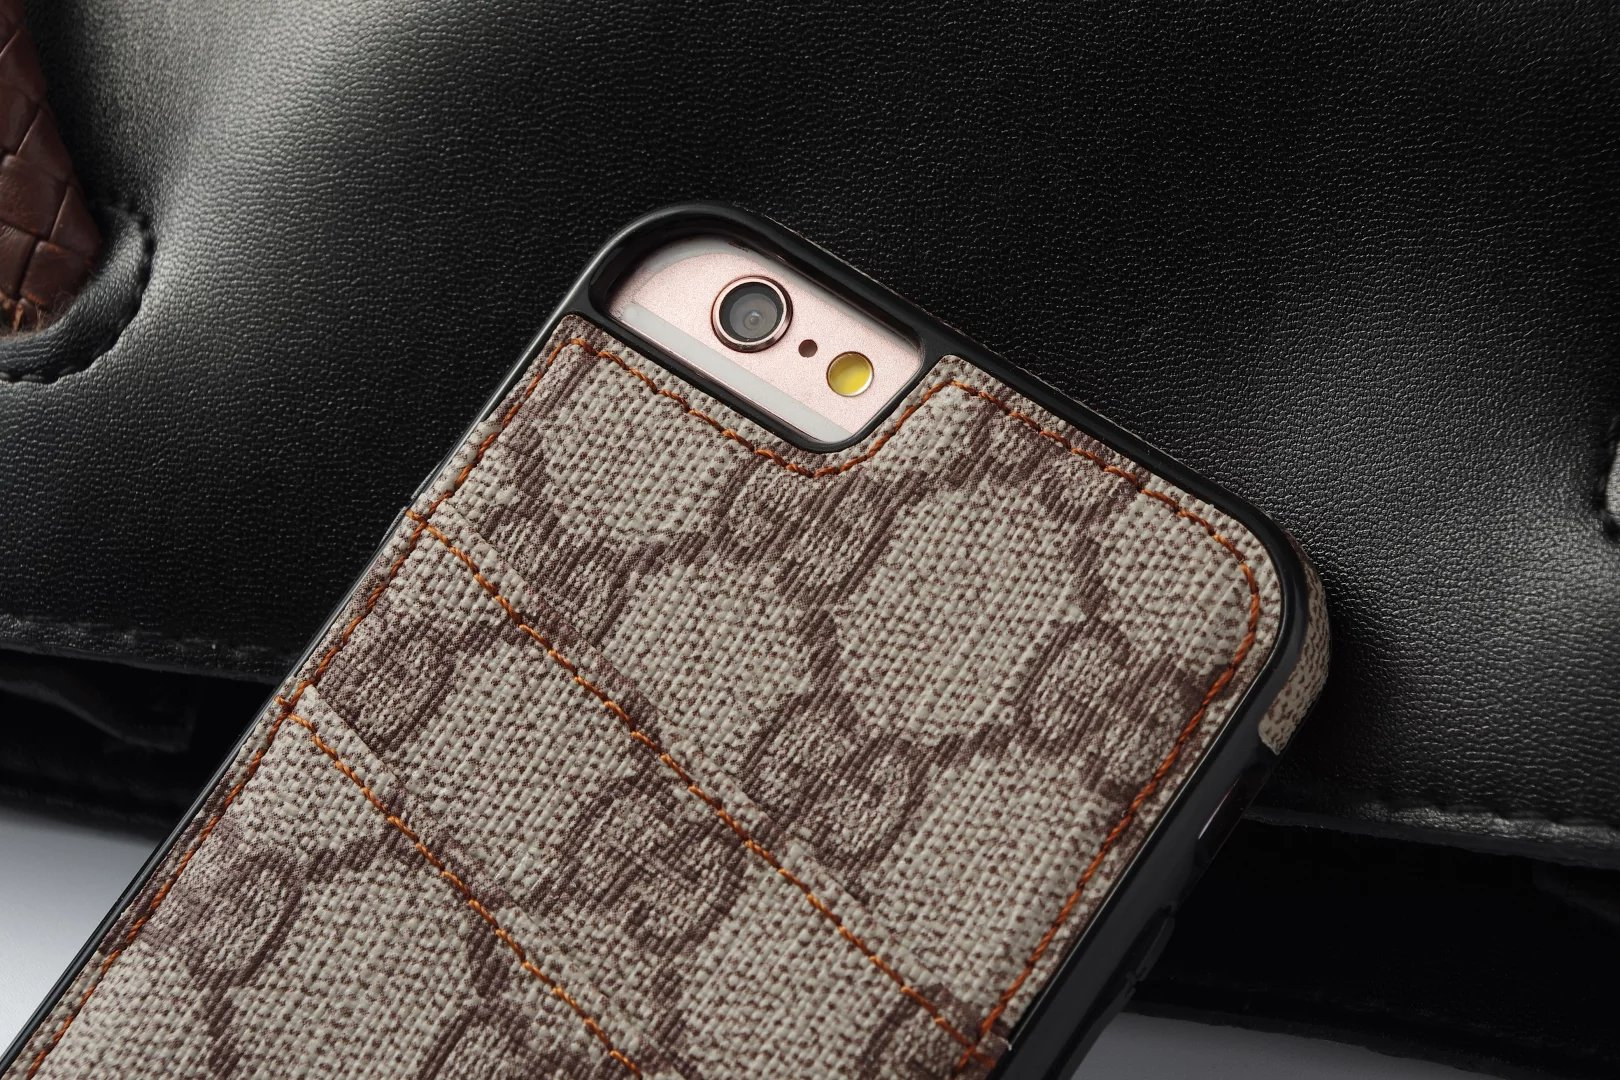 handyhülle iphone selbst gestalten designer iphone hüllen Louis Vuitton iphone6s plus hülle ca6s für iphone 6s Plus eigene handyhülle designen iphone 6s Plus leder ca6s apple iphone schutzhülle leder metallhülle iphone 6s Plus handyhülle 6slbst bedrucken